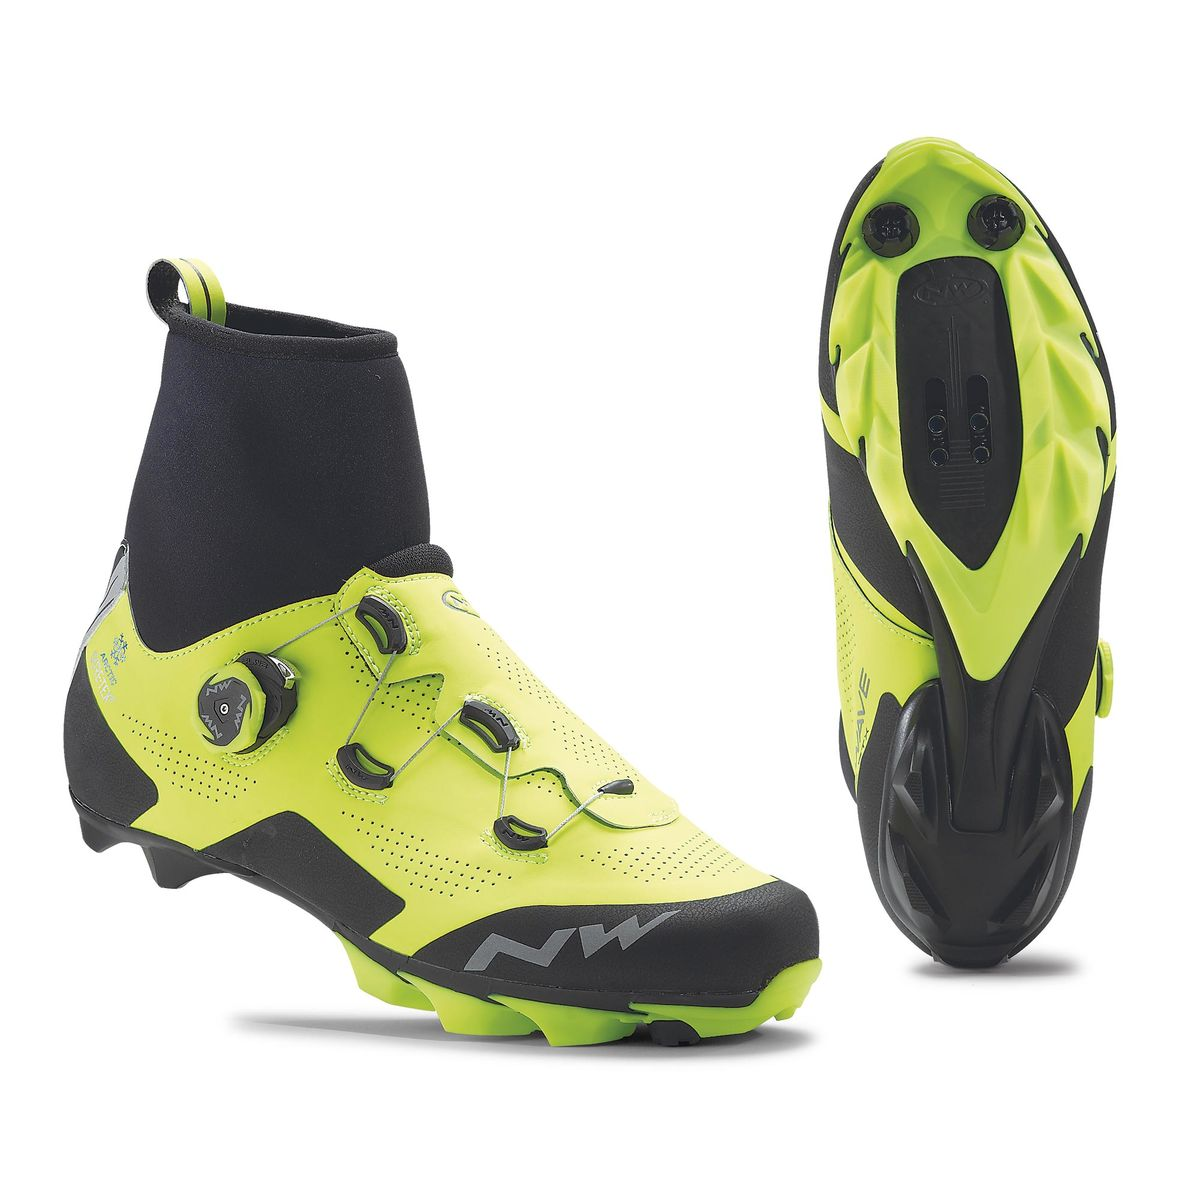 RAPTOR ARCTIC GTX MTB winter shoes